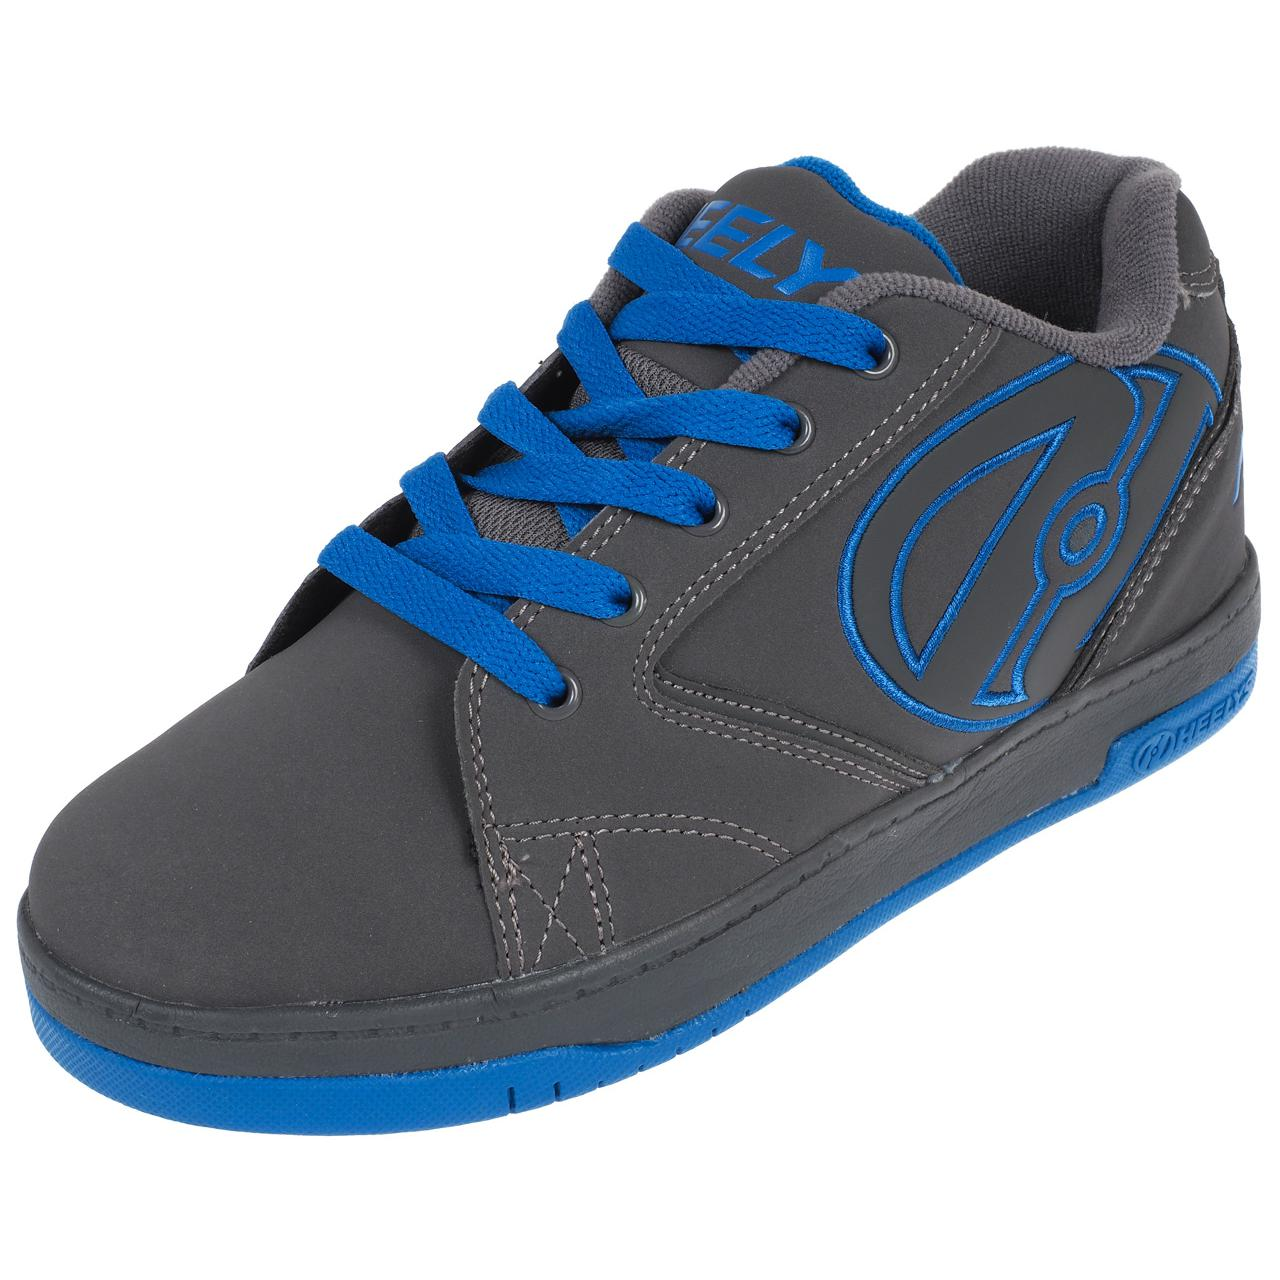 Shoes-to-Casters-Heelys-Propel-2-0-Grey-Royal-Grey-15616-New